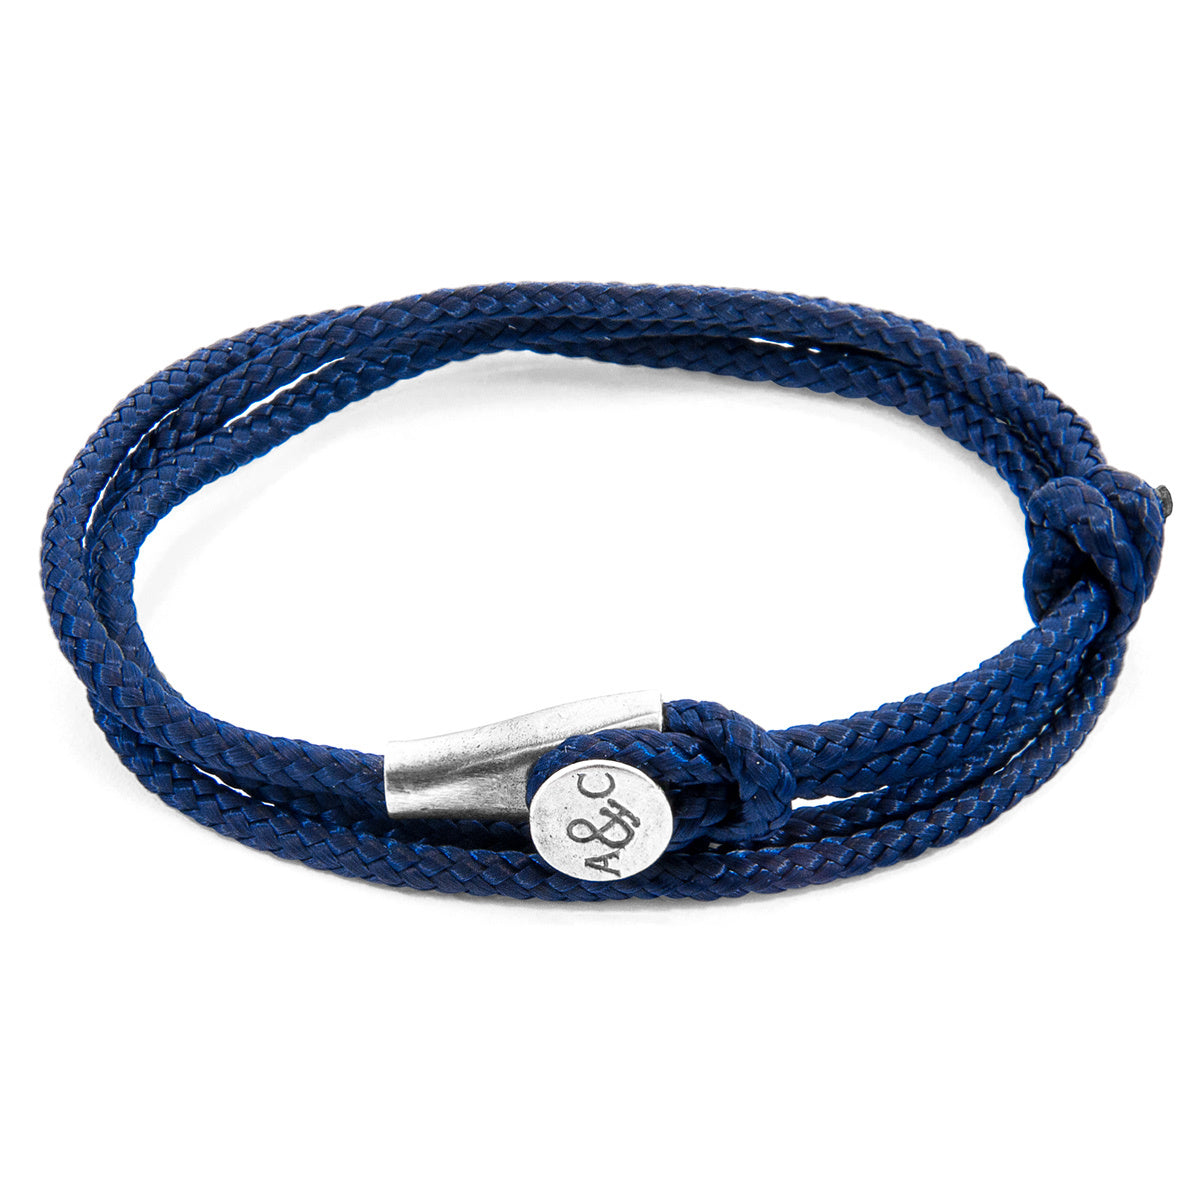 Bracelet Rope Navy Blue Dundee Silver Jewelry